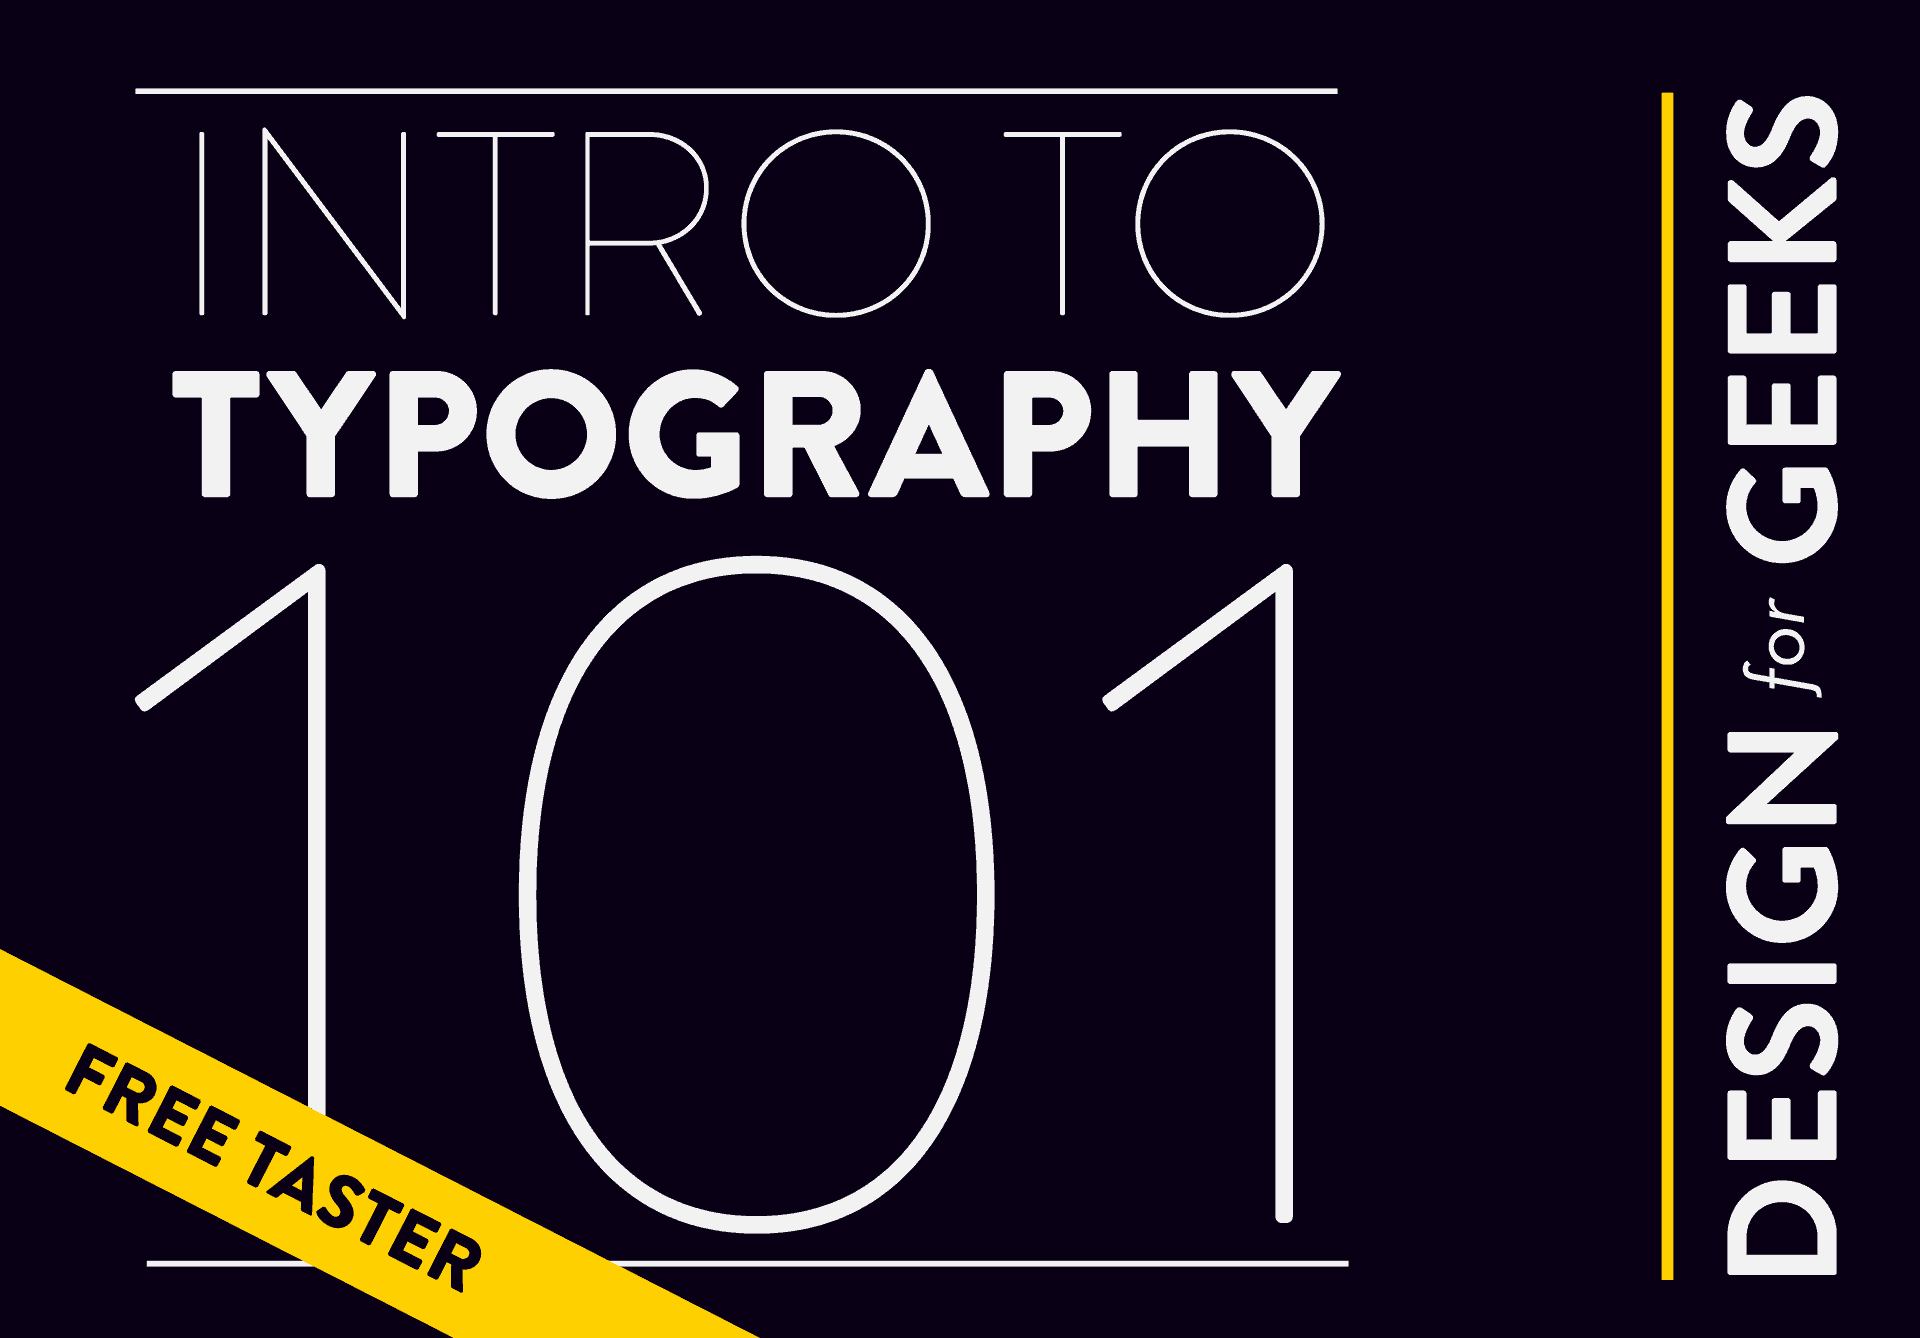 Intro-to-Typography-101-course